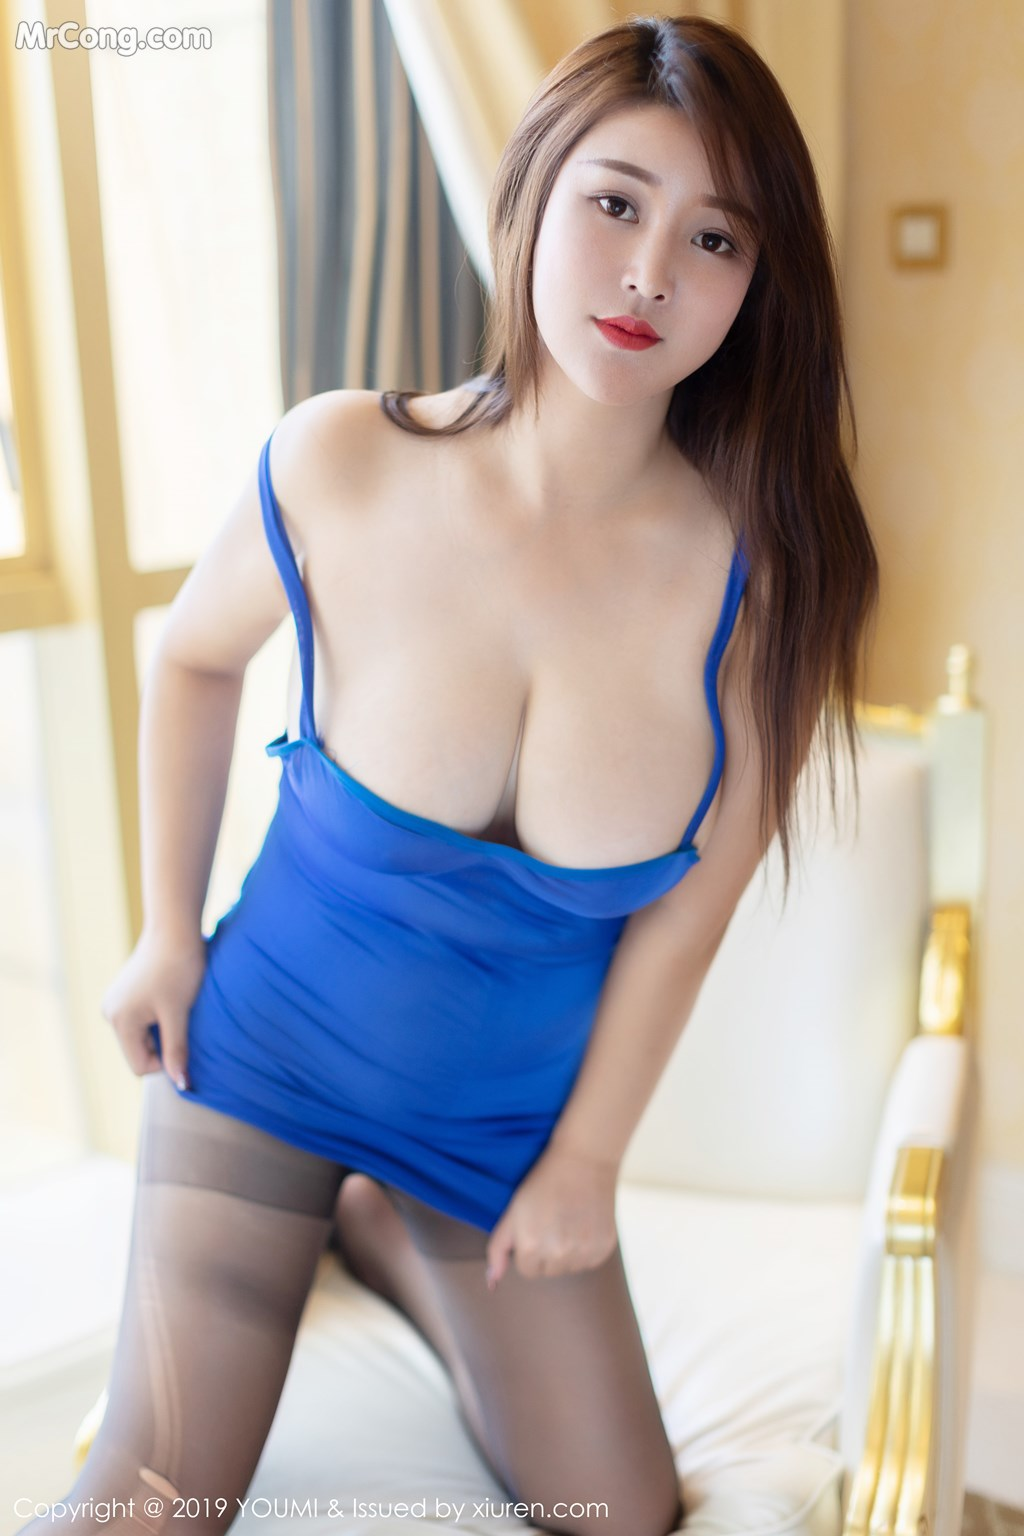 Image YouMi-Vol.341-ber-MrCong.com-005 in post YouMi Vol.341: 潘琳琳ber (56 ảnh)